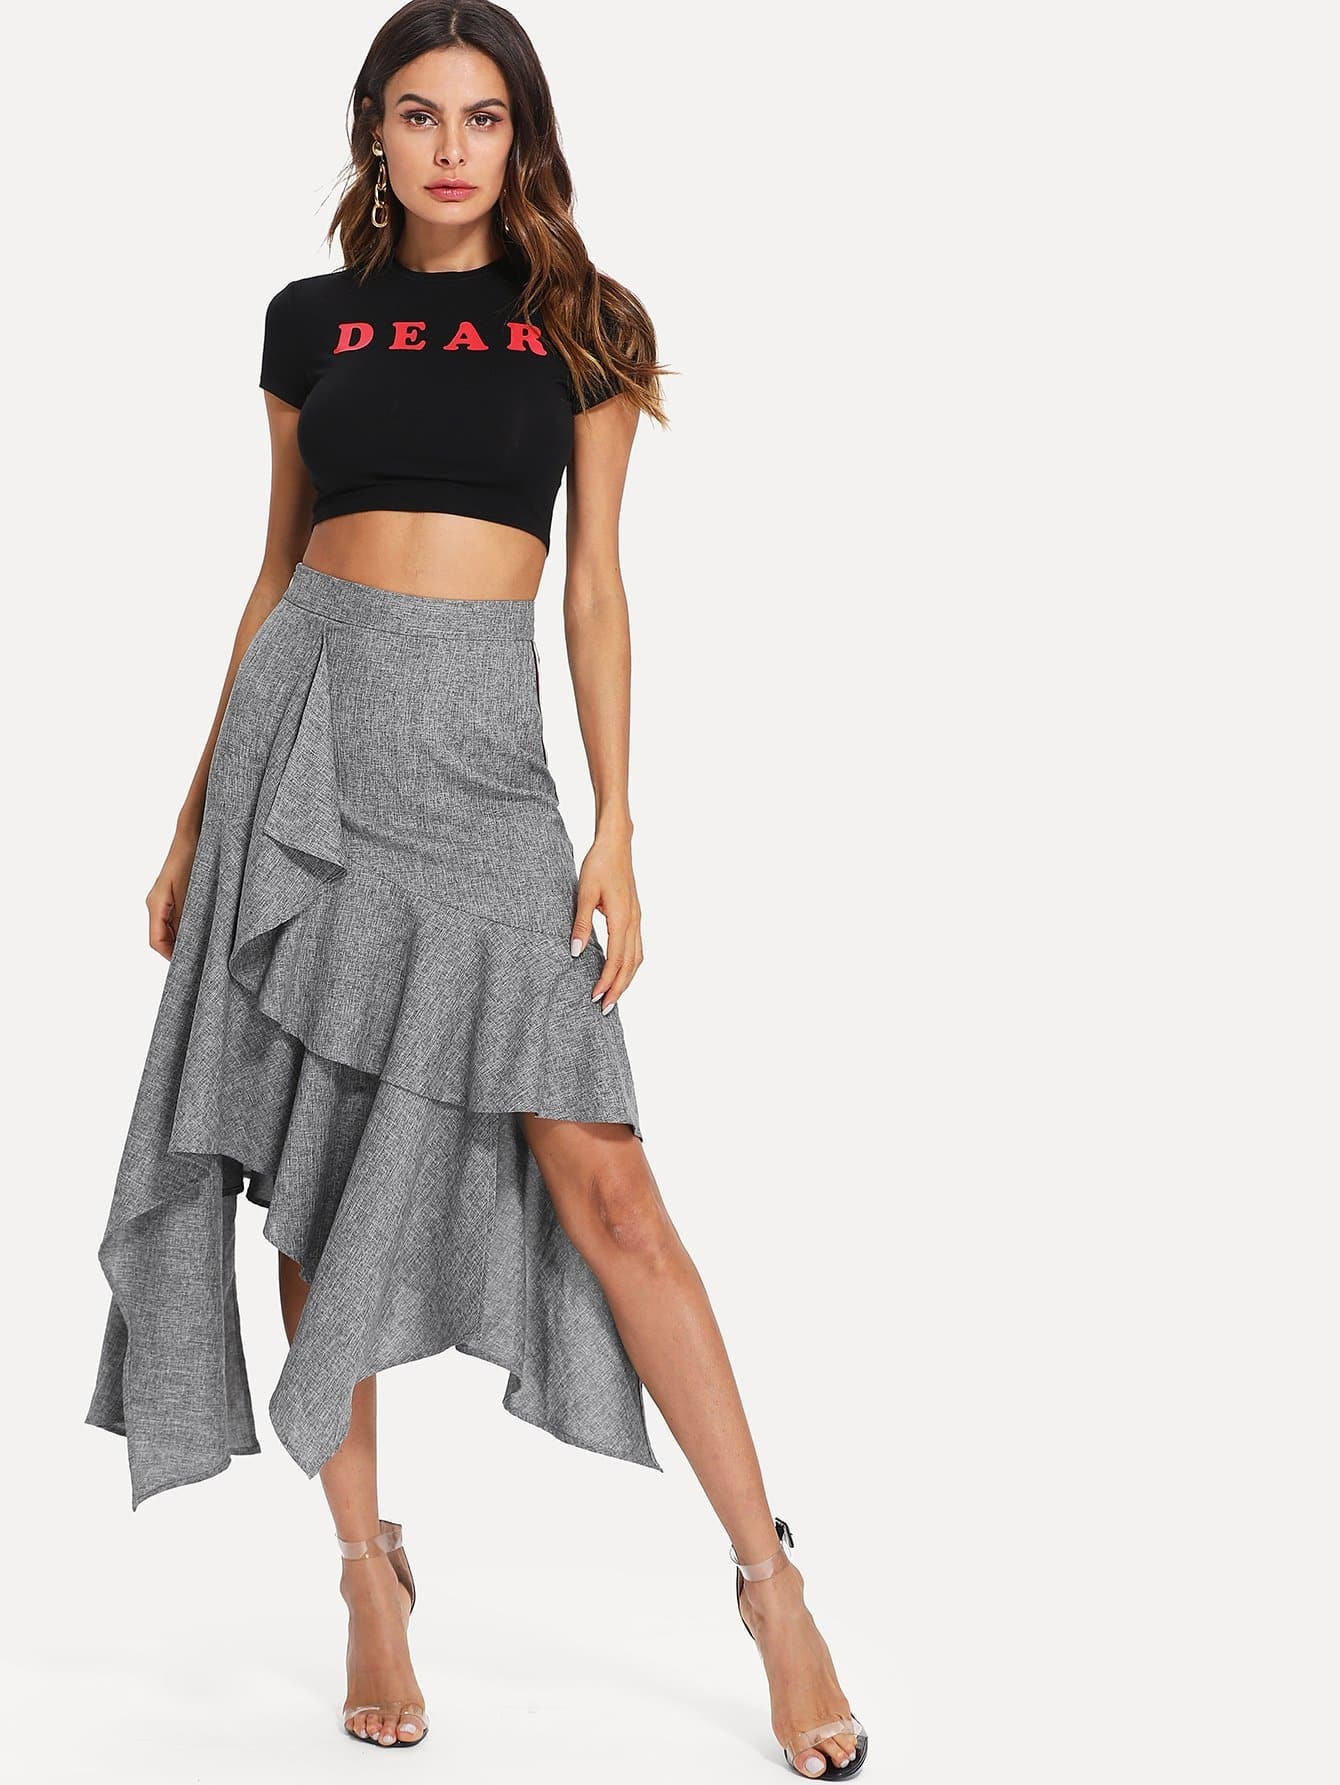 Contrast Striped Detail Asymmetrical Ruffle Hem Skirt striped ruffle hem overlap skirt